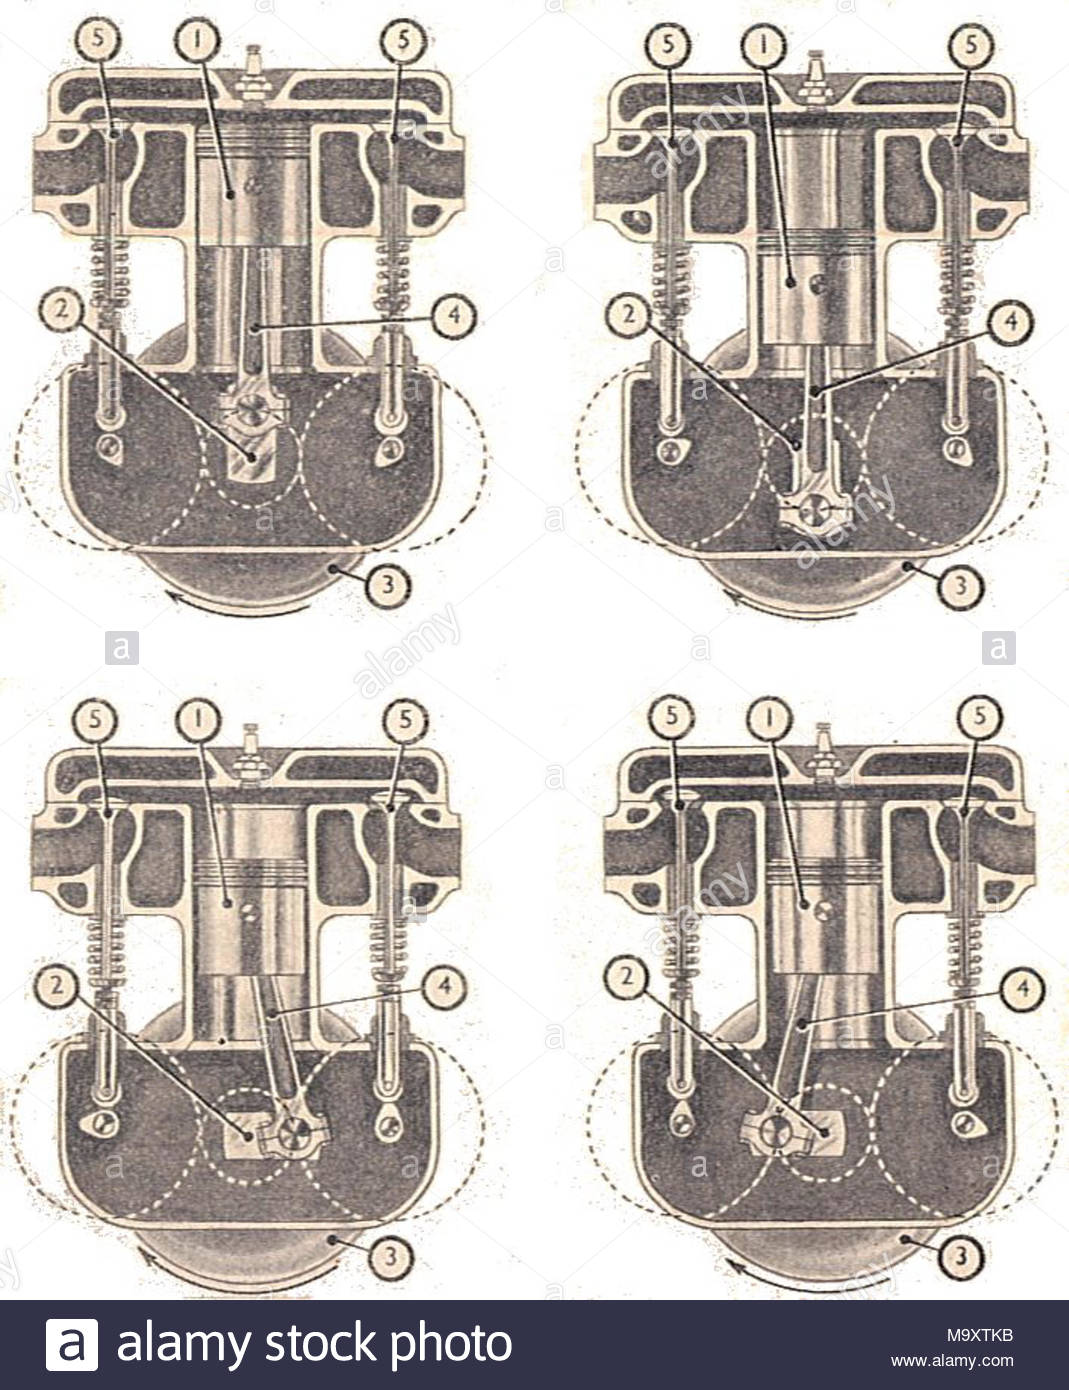 Movements of working parts of a four-stroke single-cylinder engine (Manual .